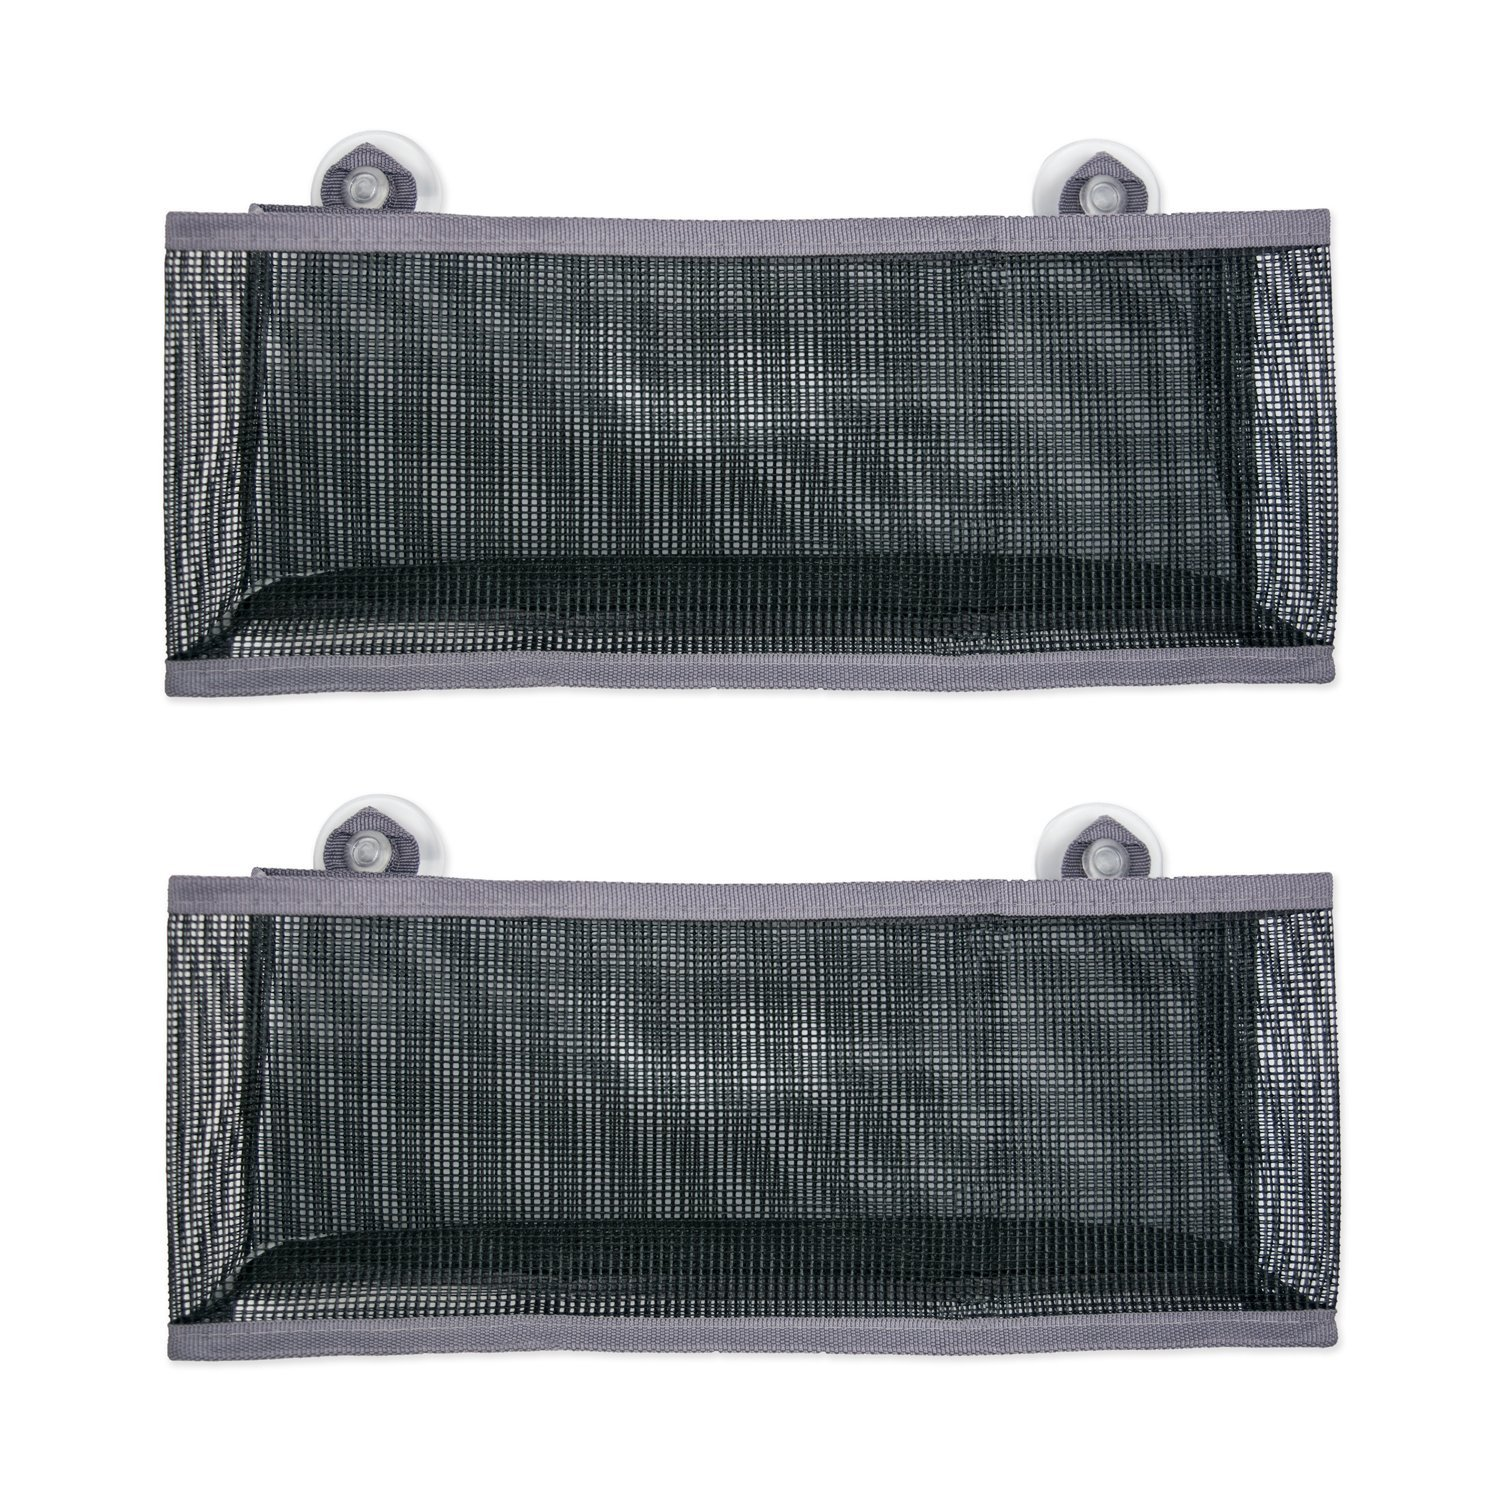 DII Mesh Hanging Pocket Bathroom, Shower Organizers Perfect for Toys, Toiletries, Laundry Room, Under the Sink CAMZ35647